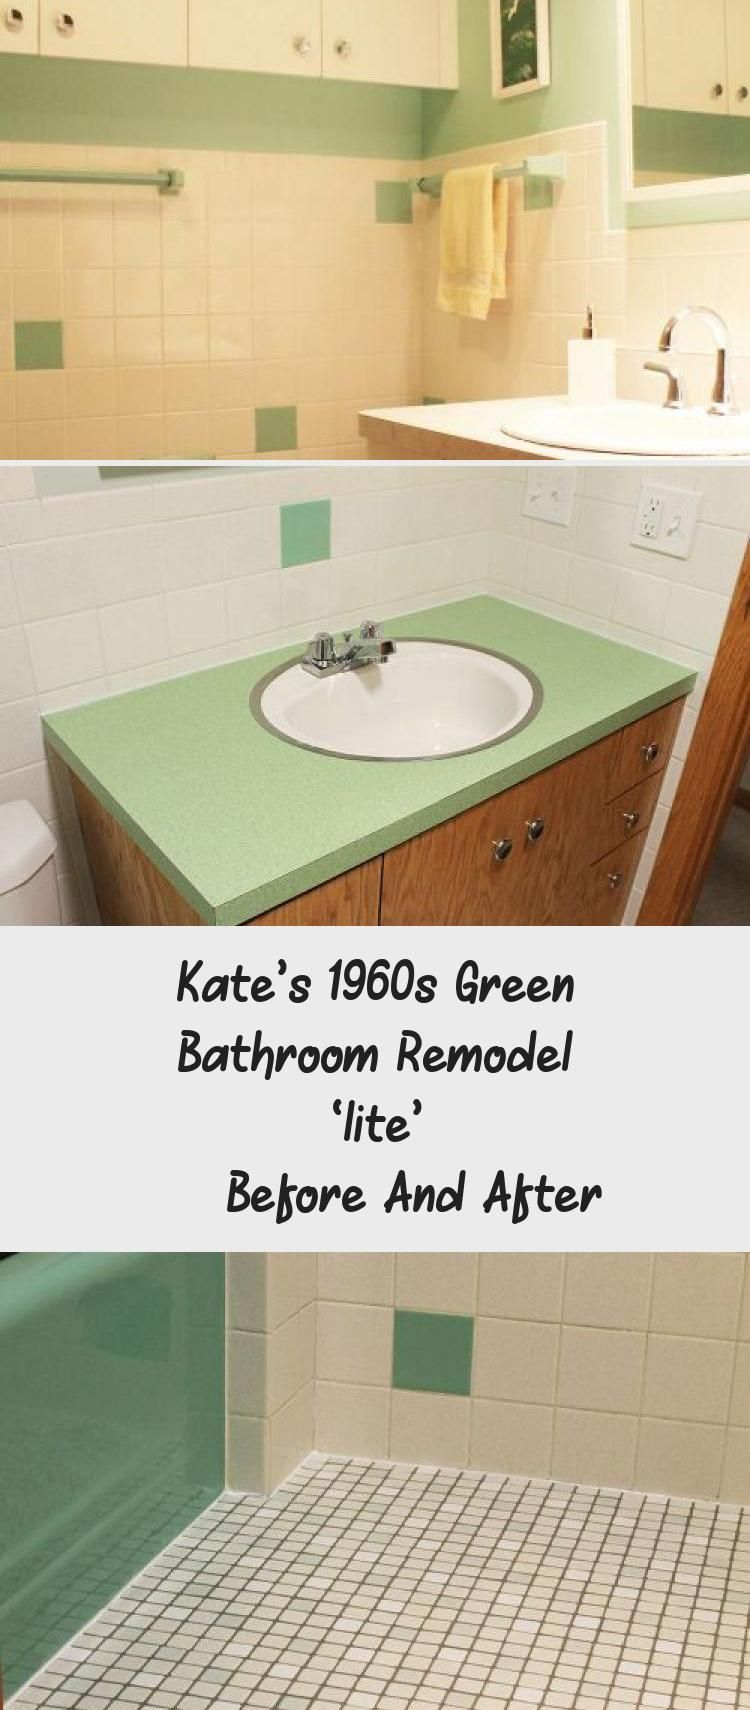 Kate's 1960s Green Bathroom Remodel 'lite' — Before And ...